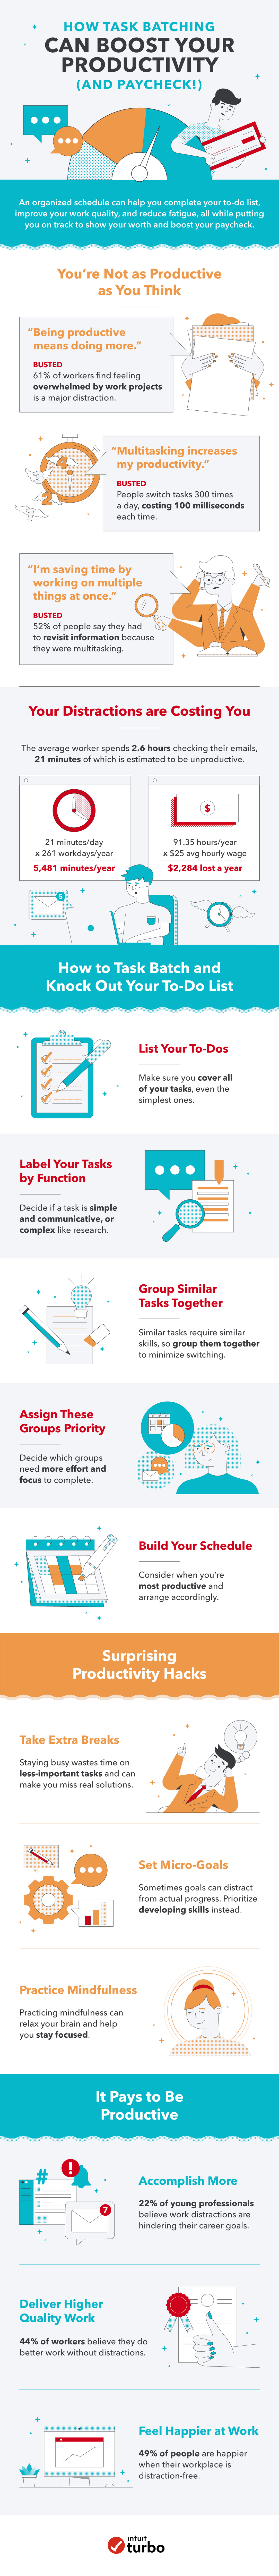 How to task batch infographic